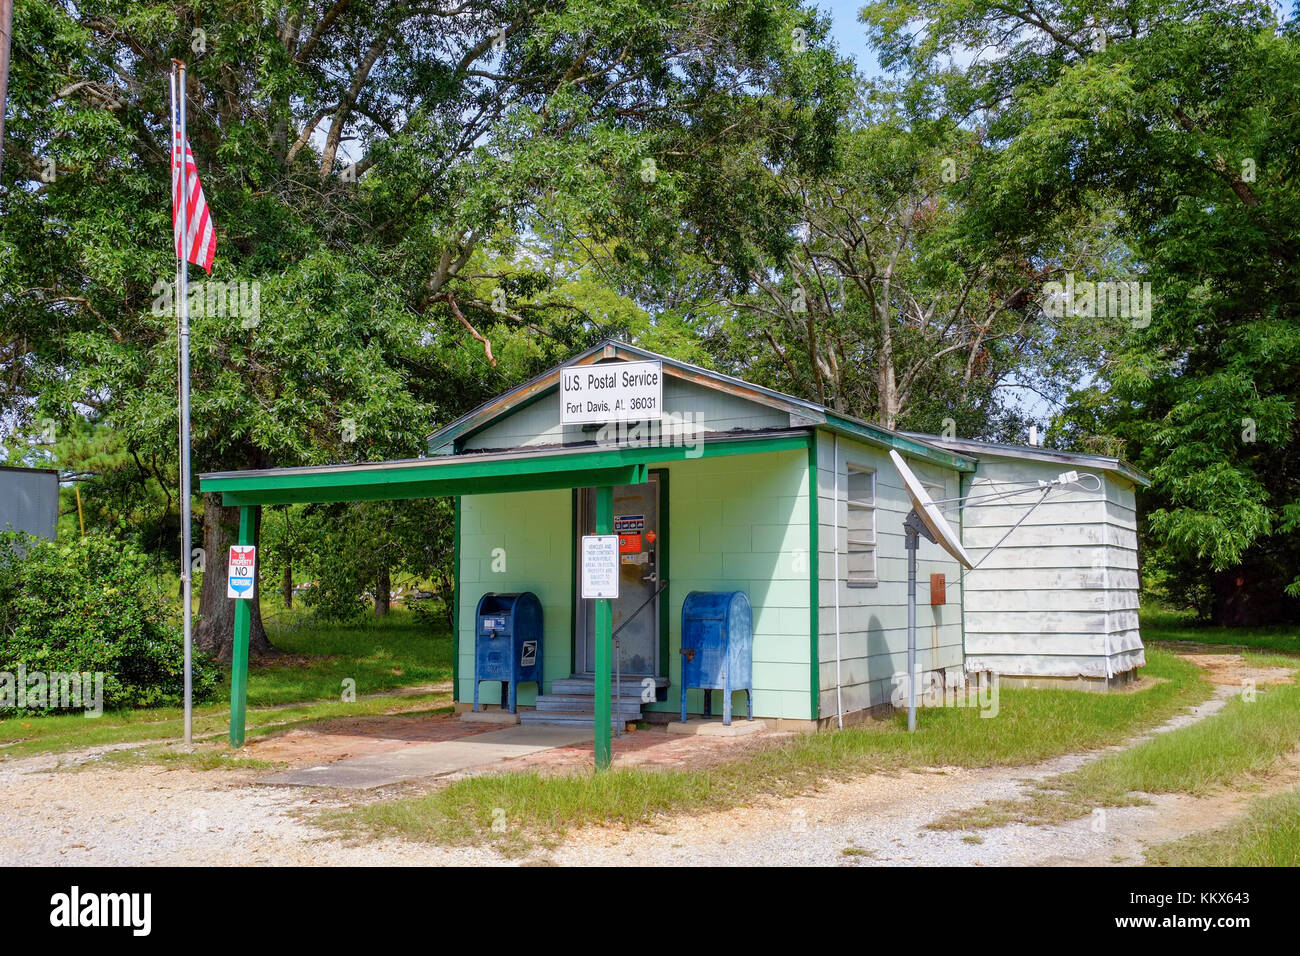 Small rural American Post Office in the community of Ft Davis Alabama, USA. - Stock Image